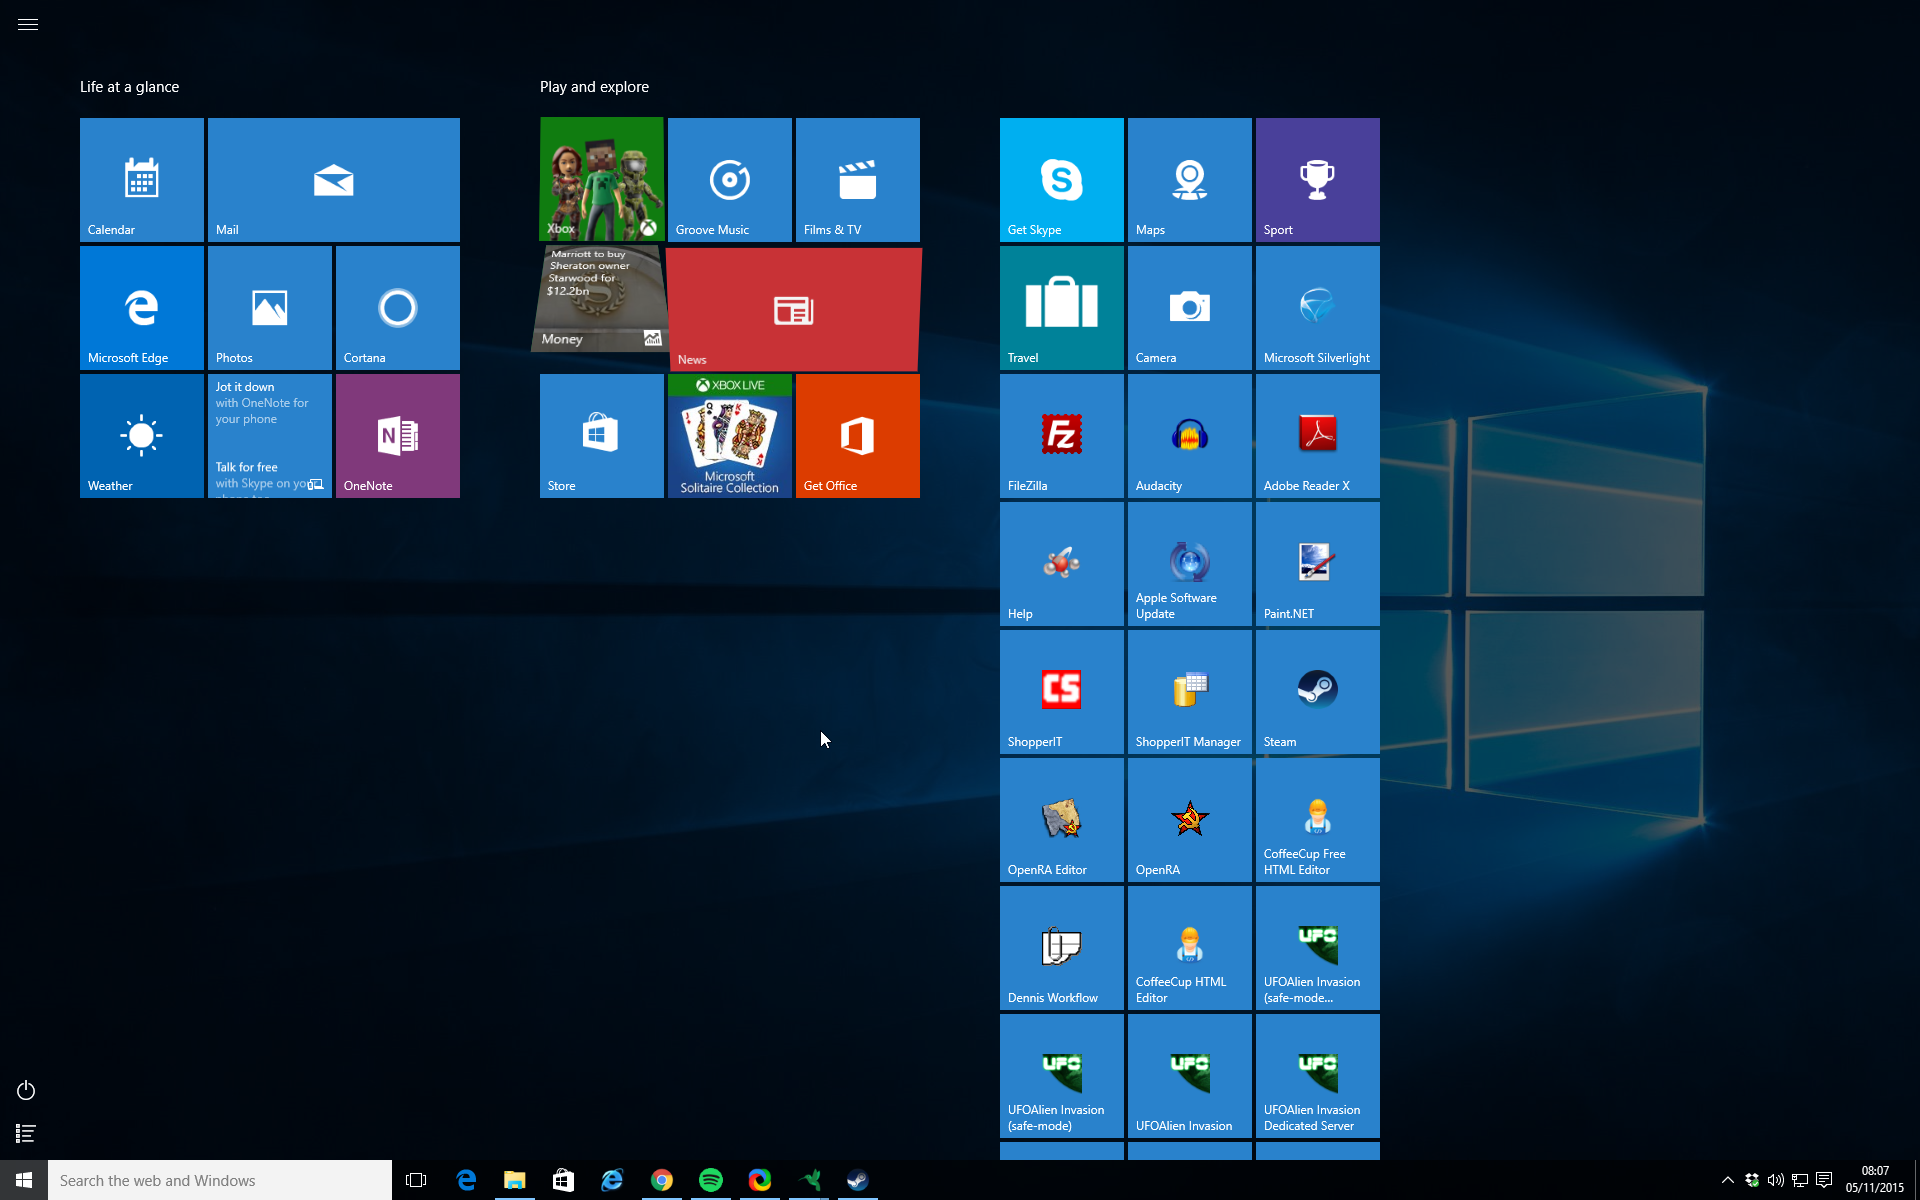 Down Sides To Windows 10 Full Screen Start Menu